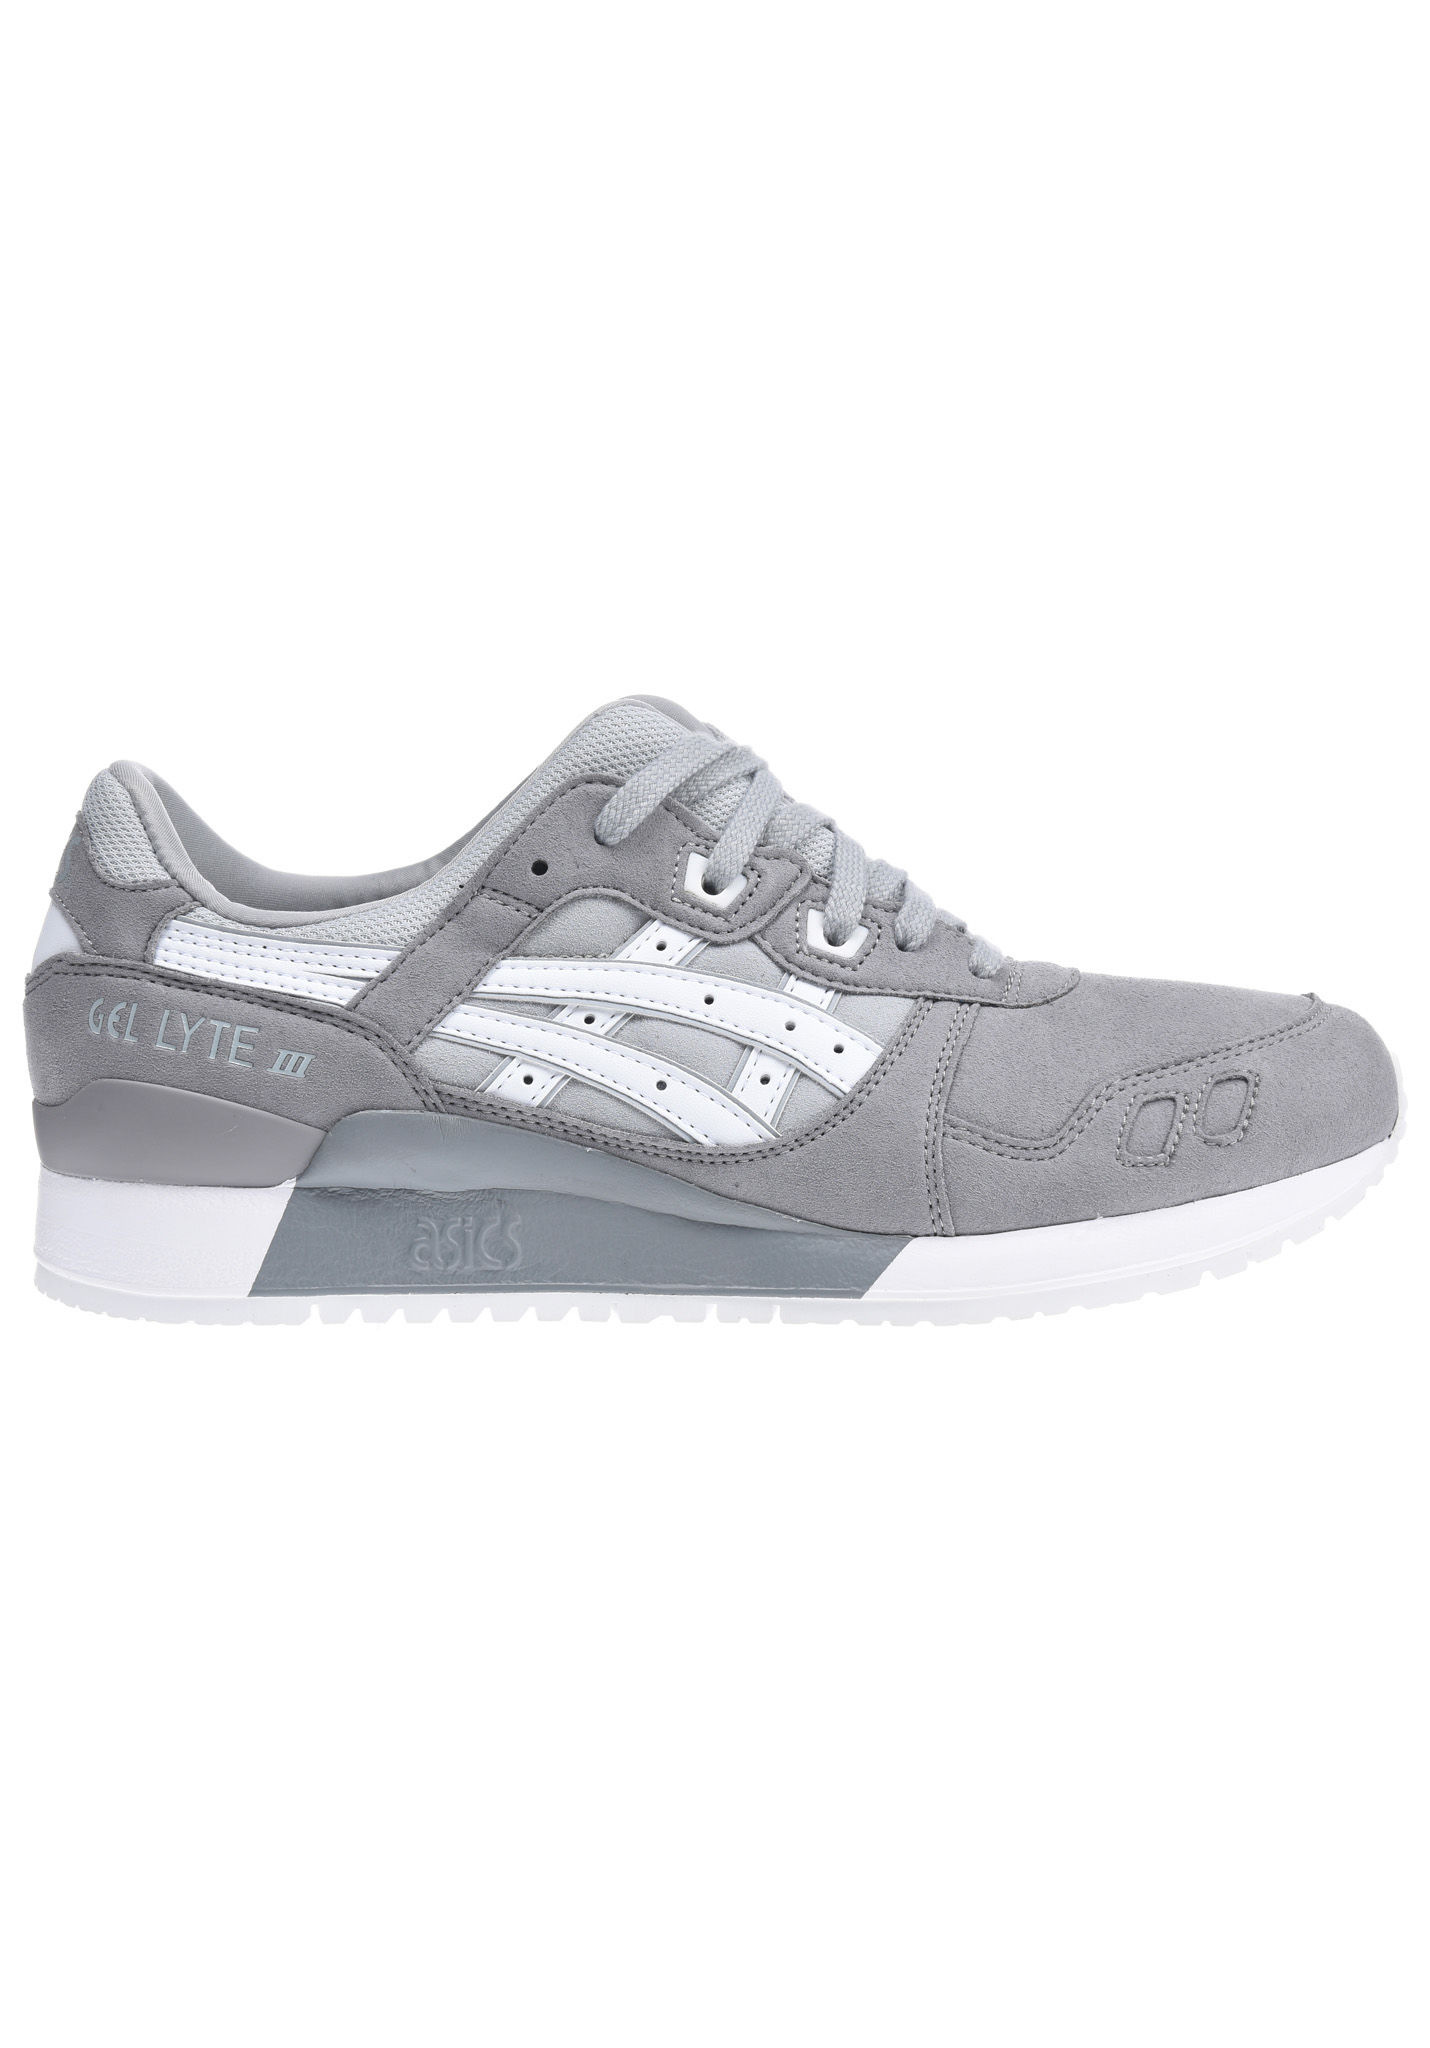 6203cf27ca6 Asics Tiger Gel-Lyte III - Sneakers for Men - Grey - Planet Sports